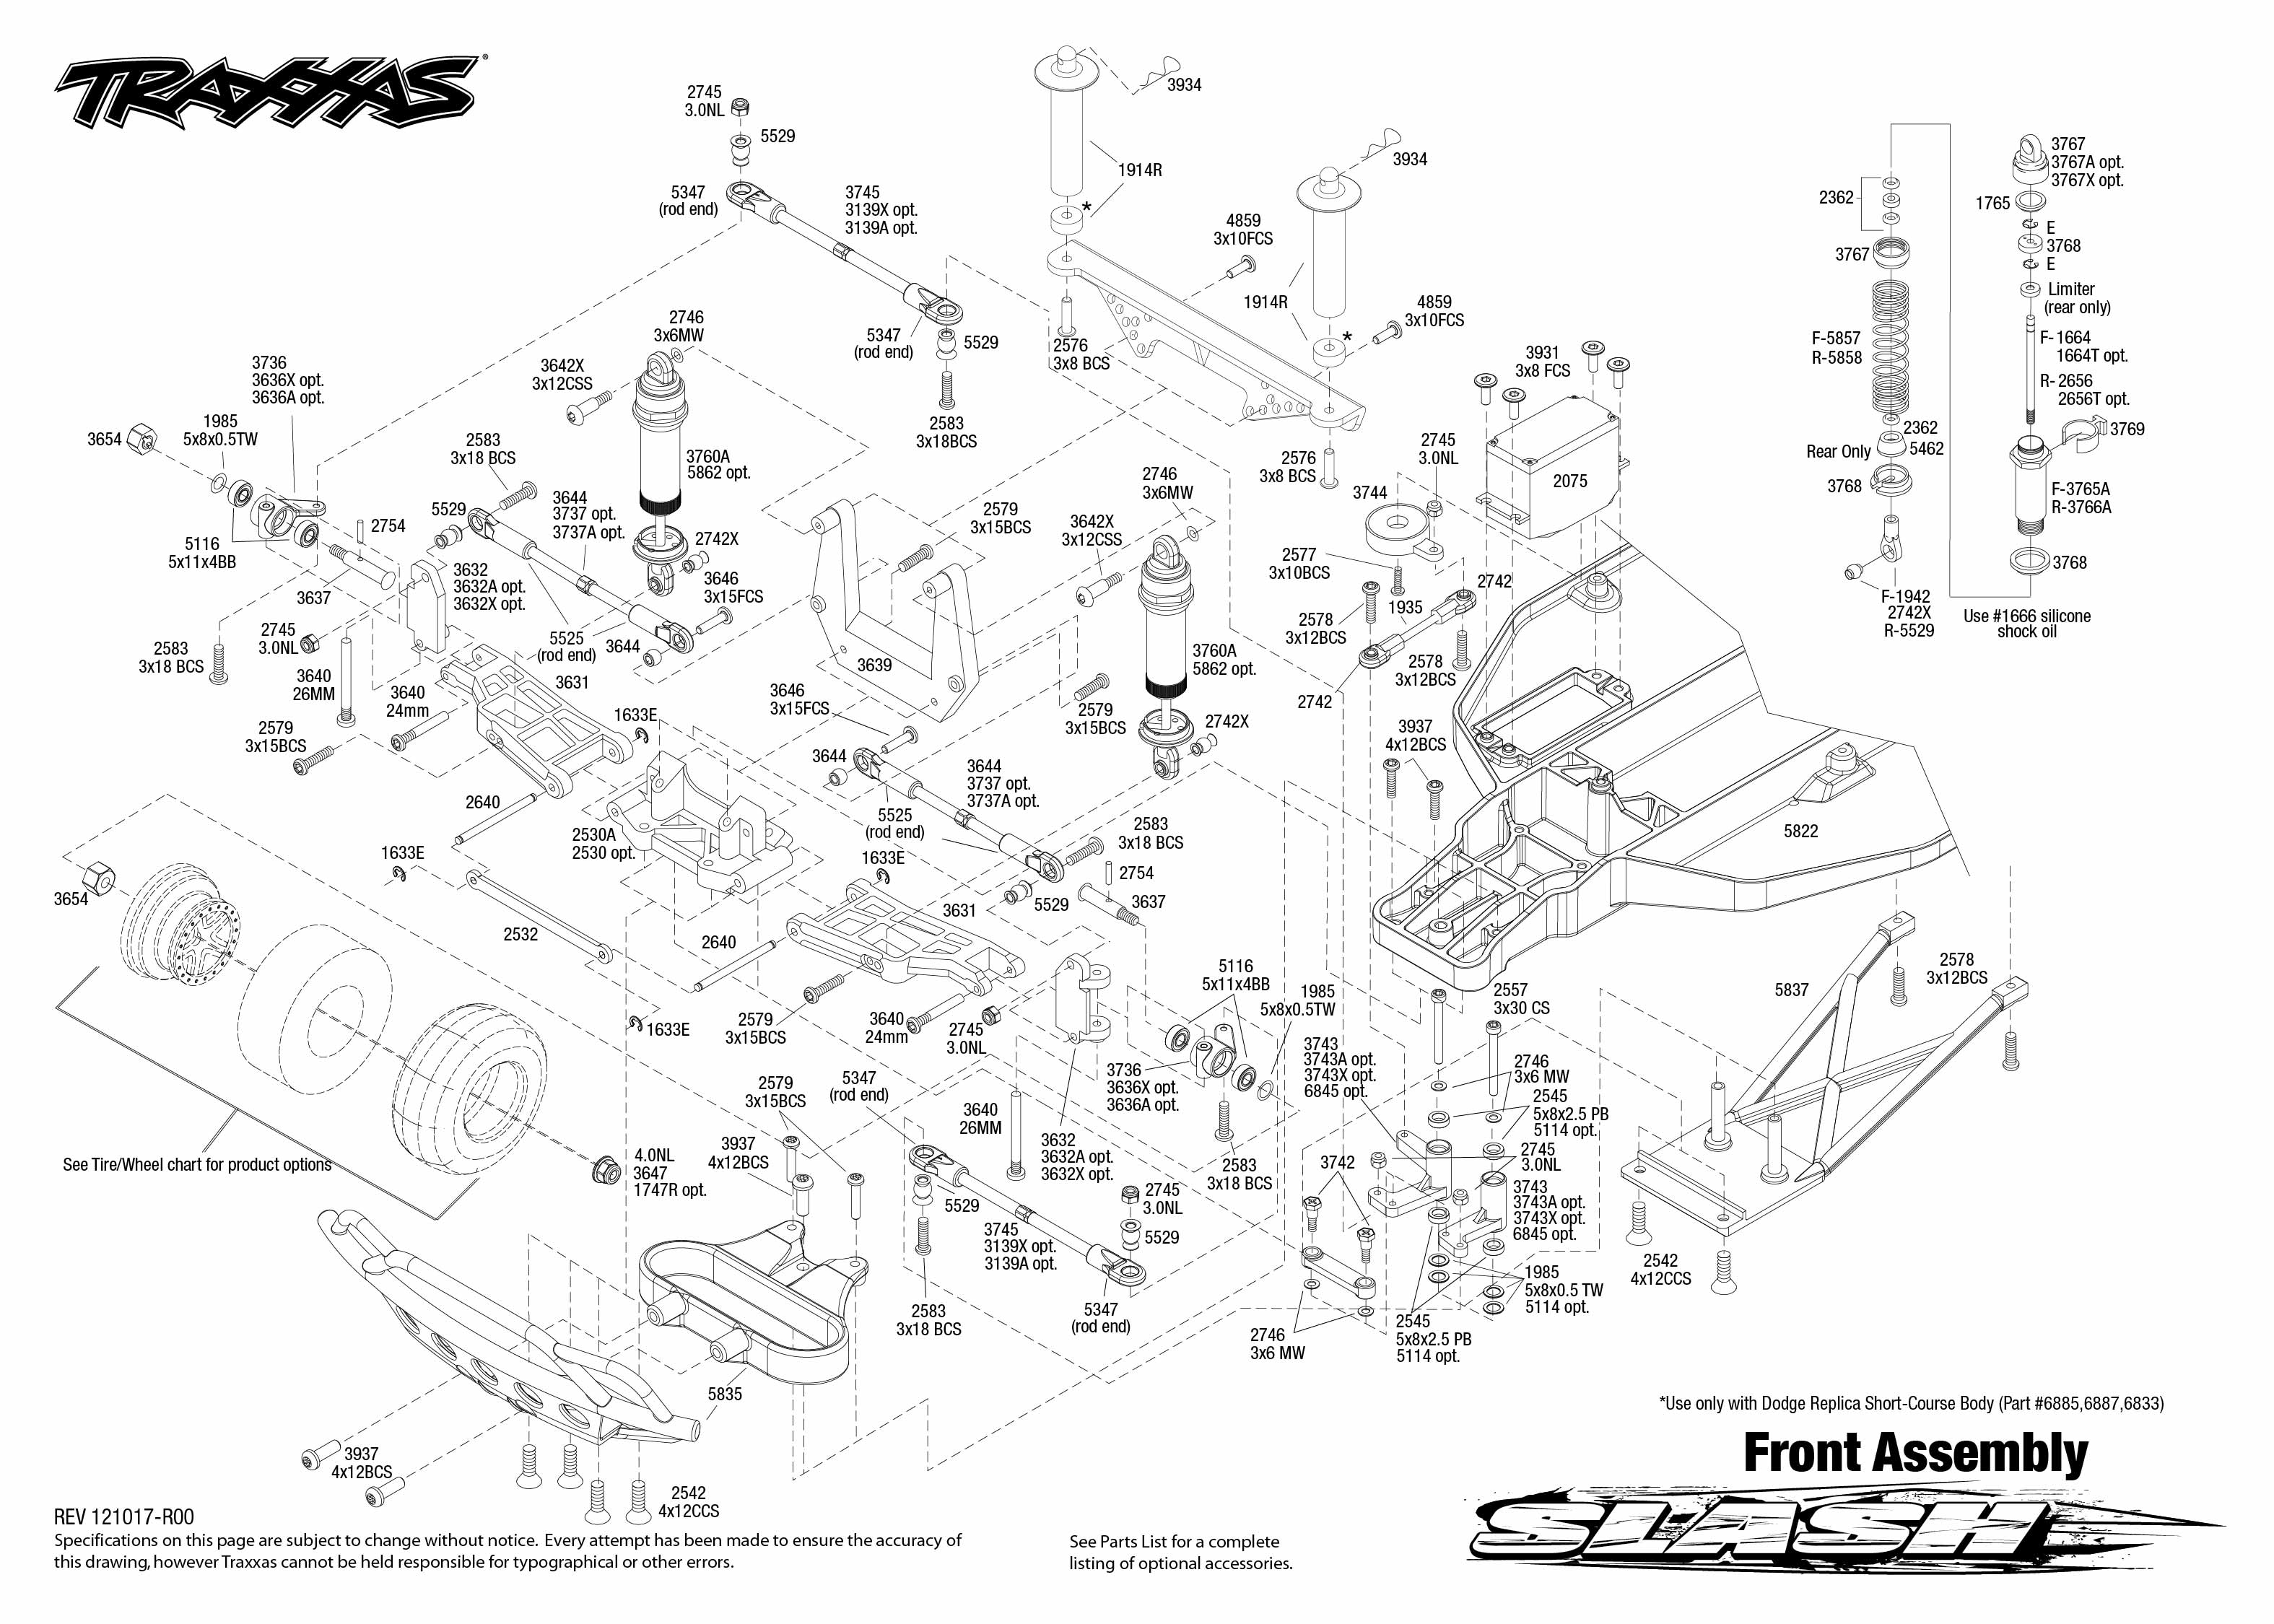 Cool T Maxx Parts Diagram Photos - Best Image Schematics - imusa.us